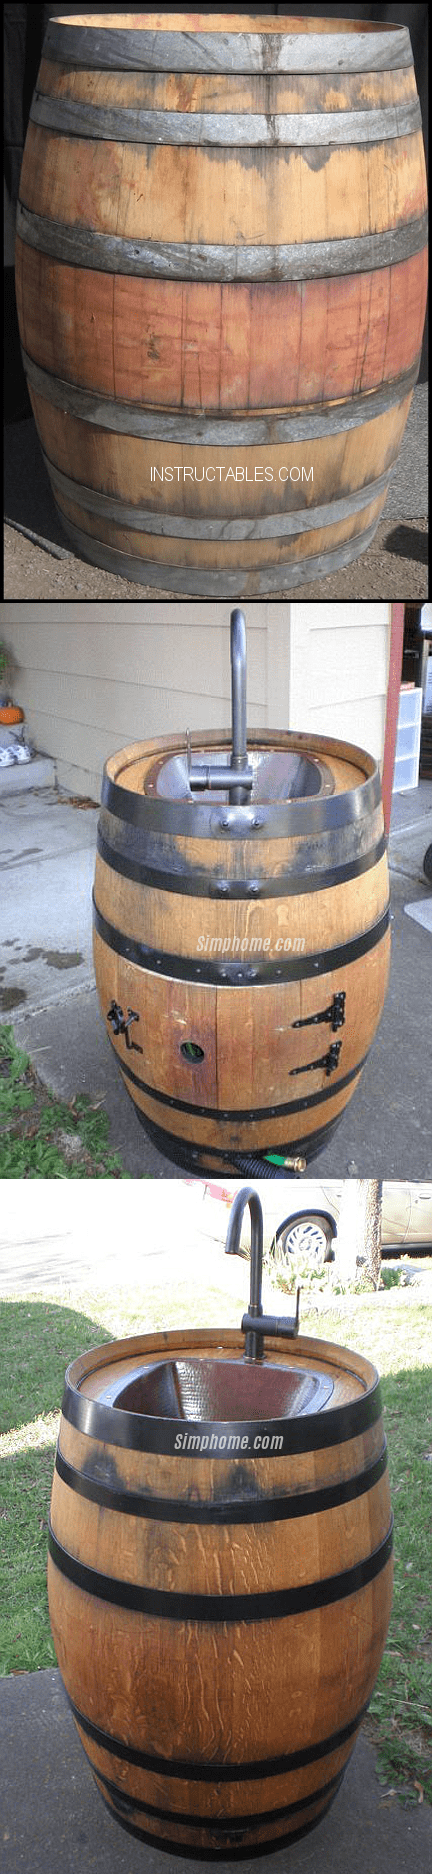 1.Simphome.com Turn an Old Wine Barrel into an Outdoor Sink